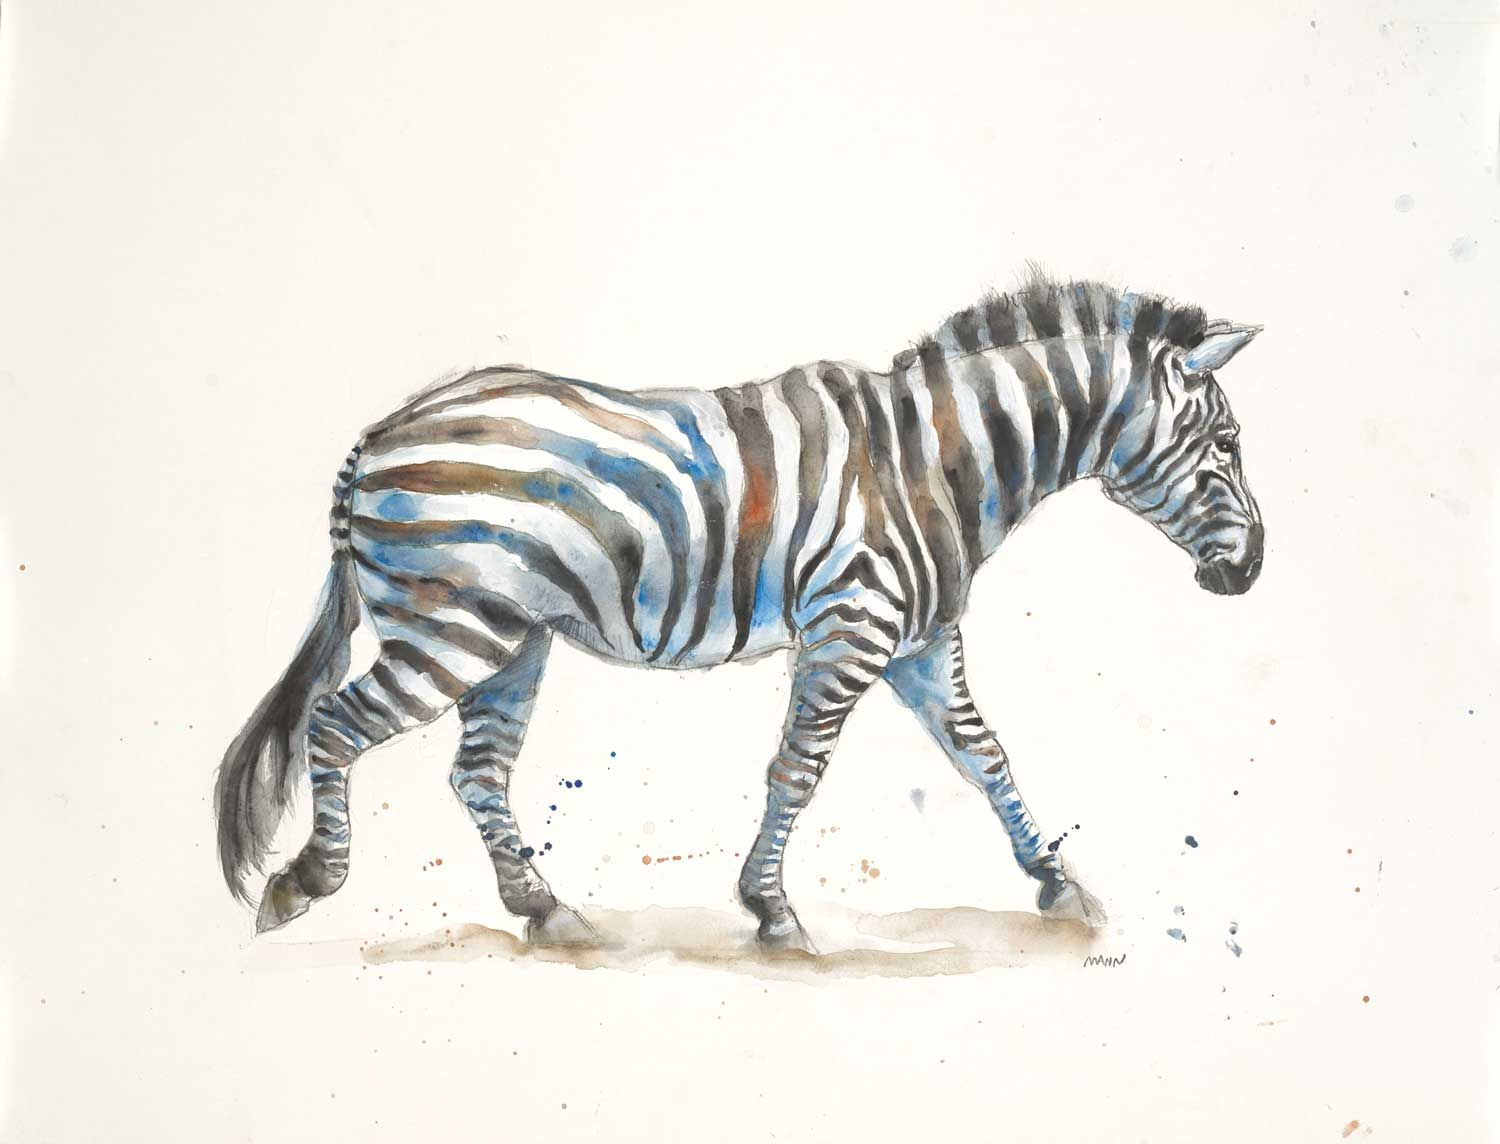 Zebra by Patti Mann | My Art ©Patti Mann & Blonde Iguana Art | Pinterest